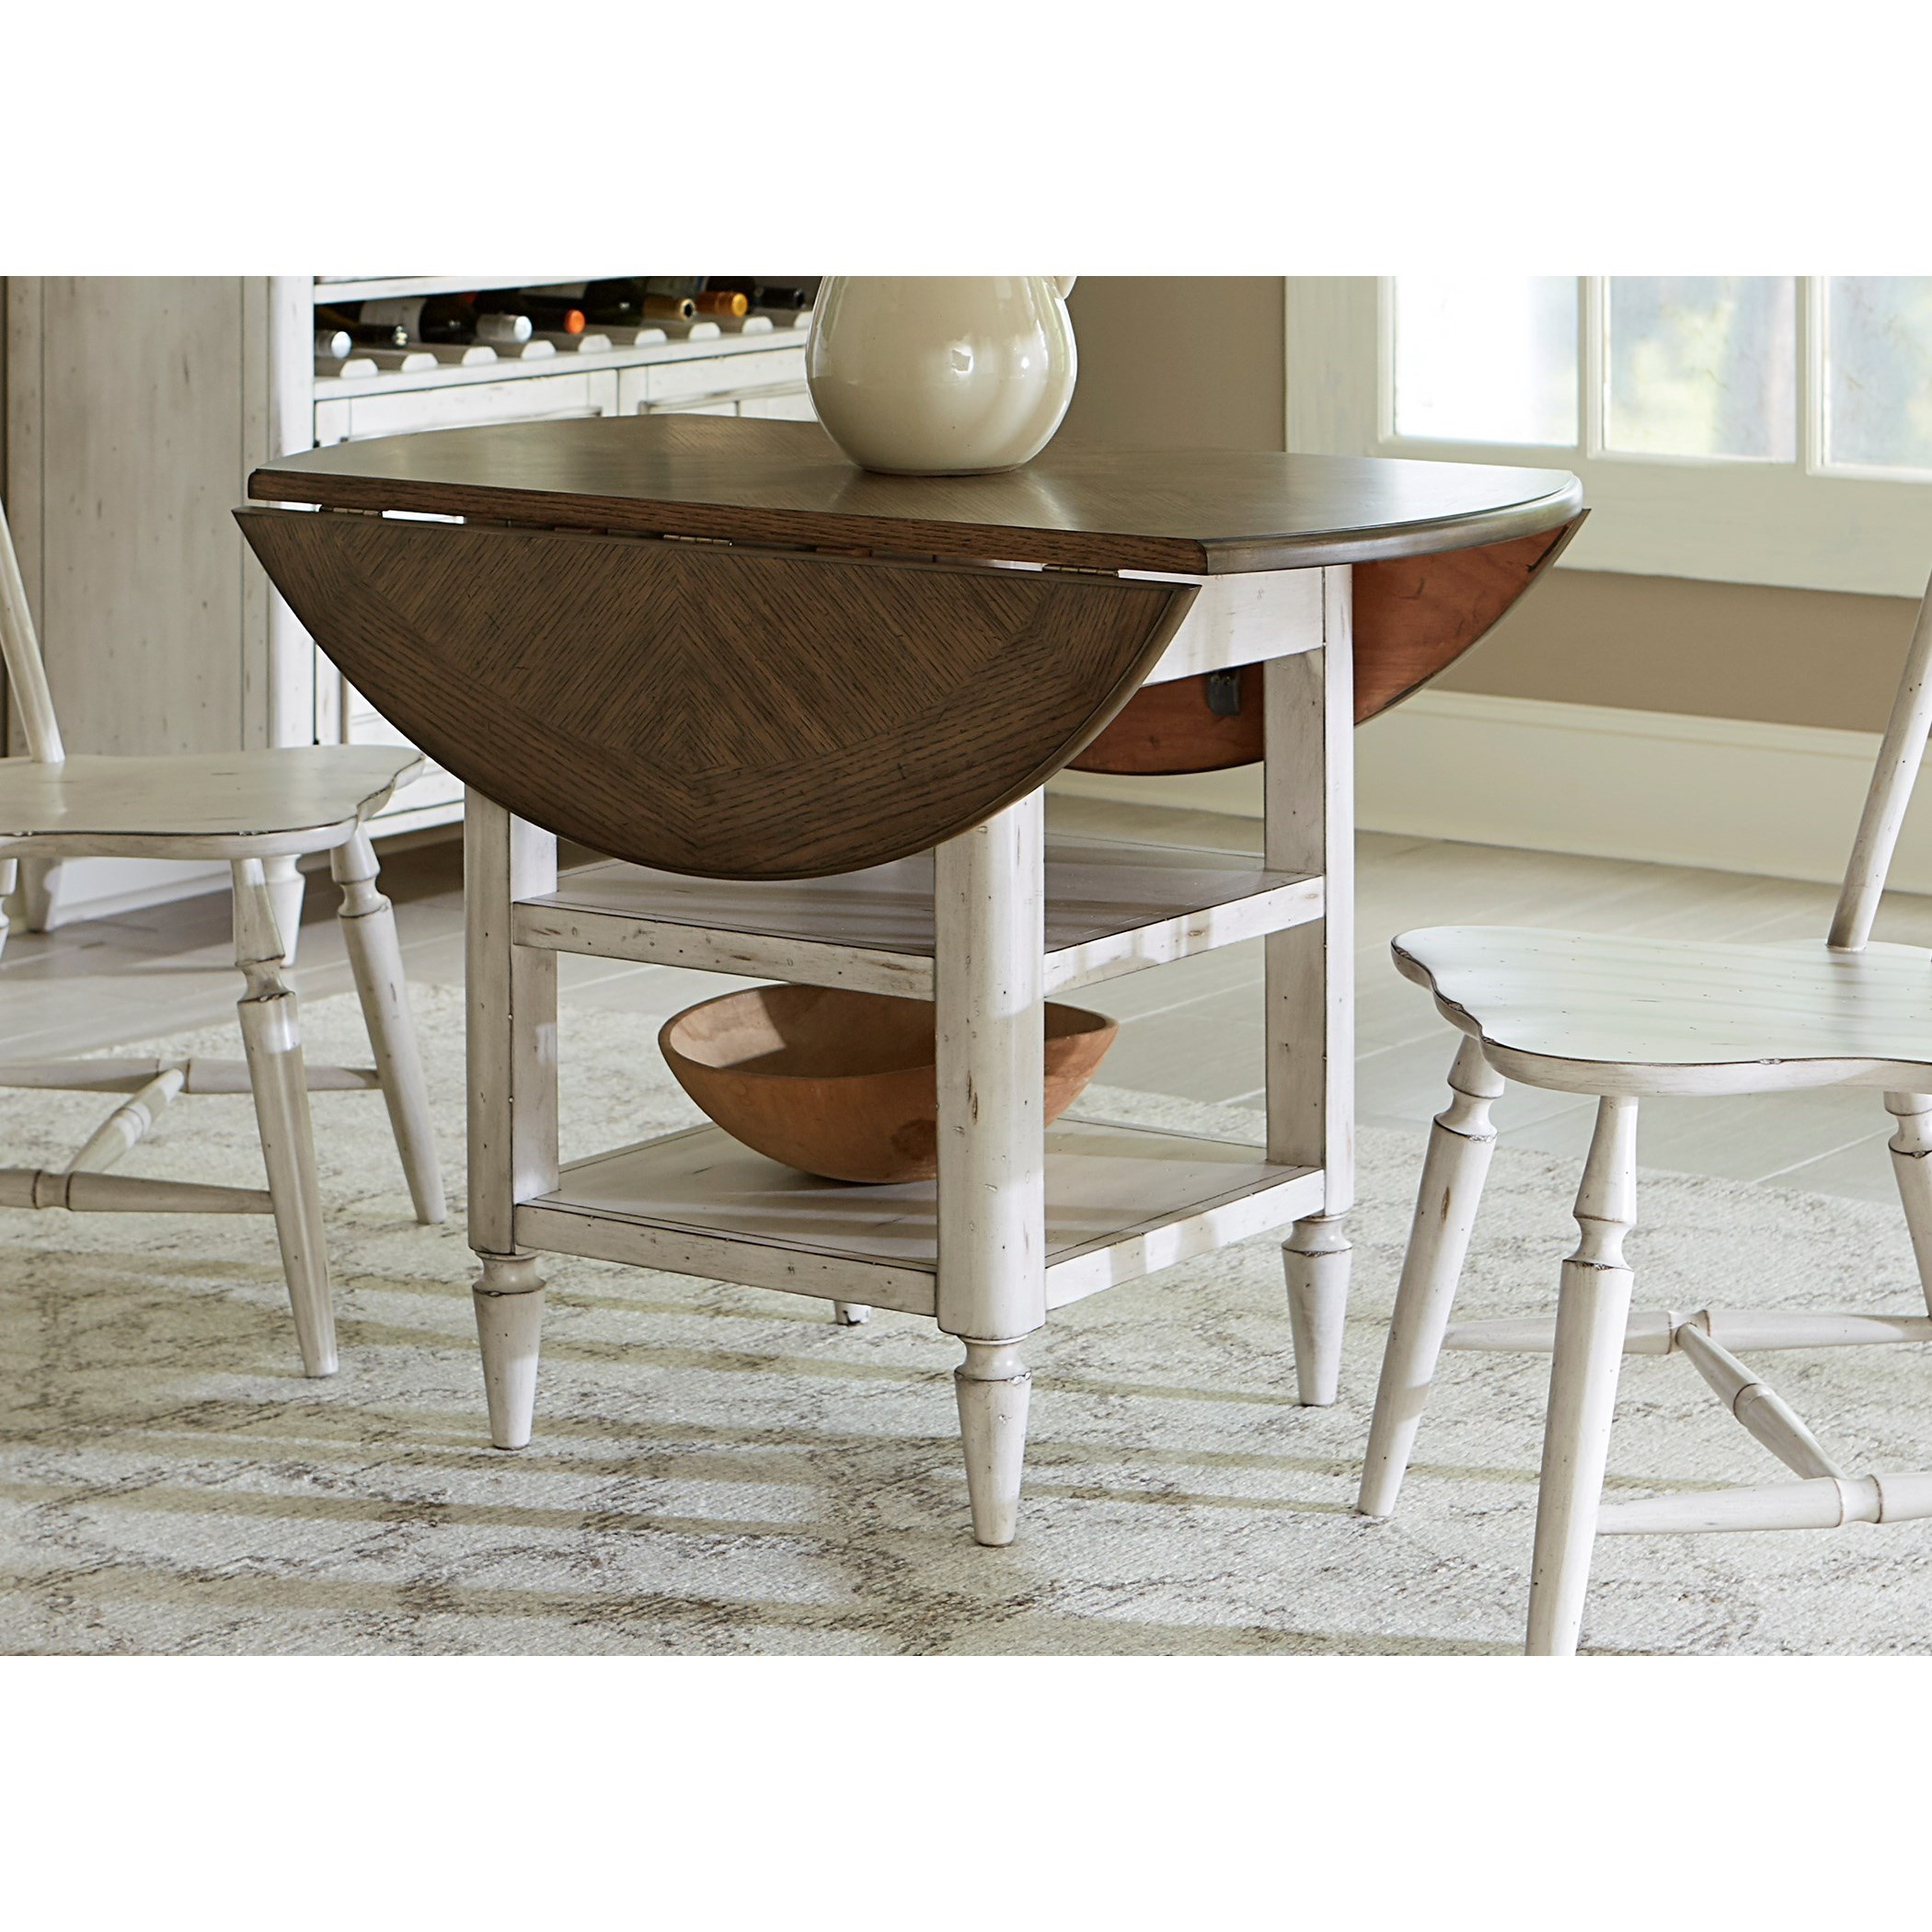 Elegant Liberty Furniture Oak Hill Dining Drop Leaf Table With Storage   Adcock  Furniture   Kitchen Table